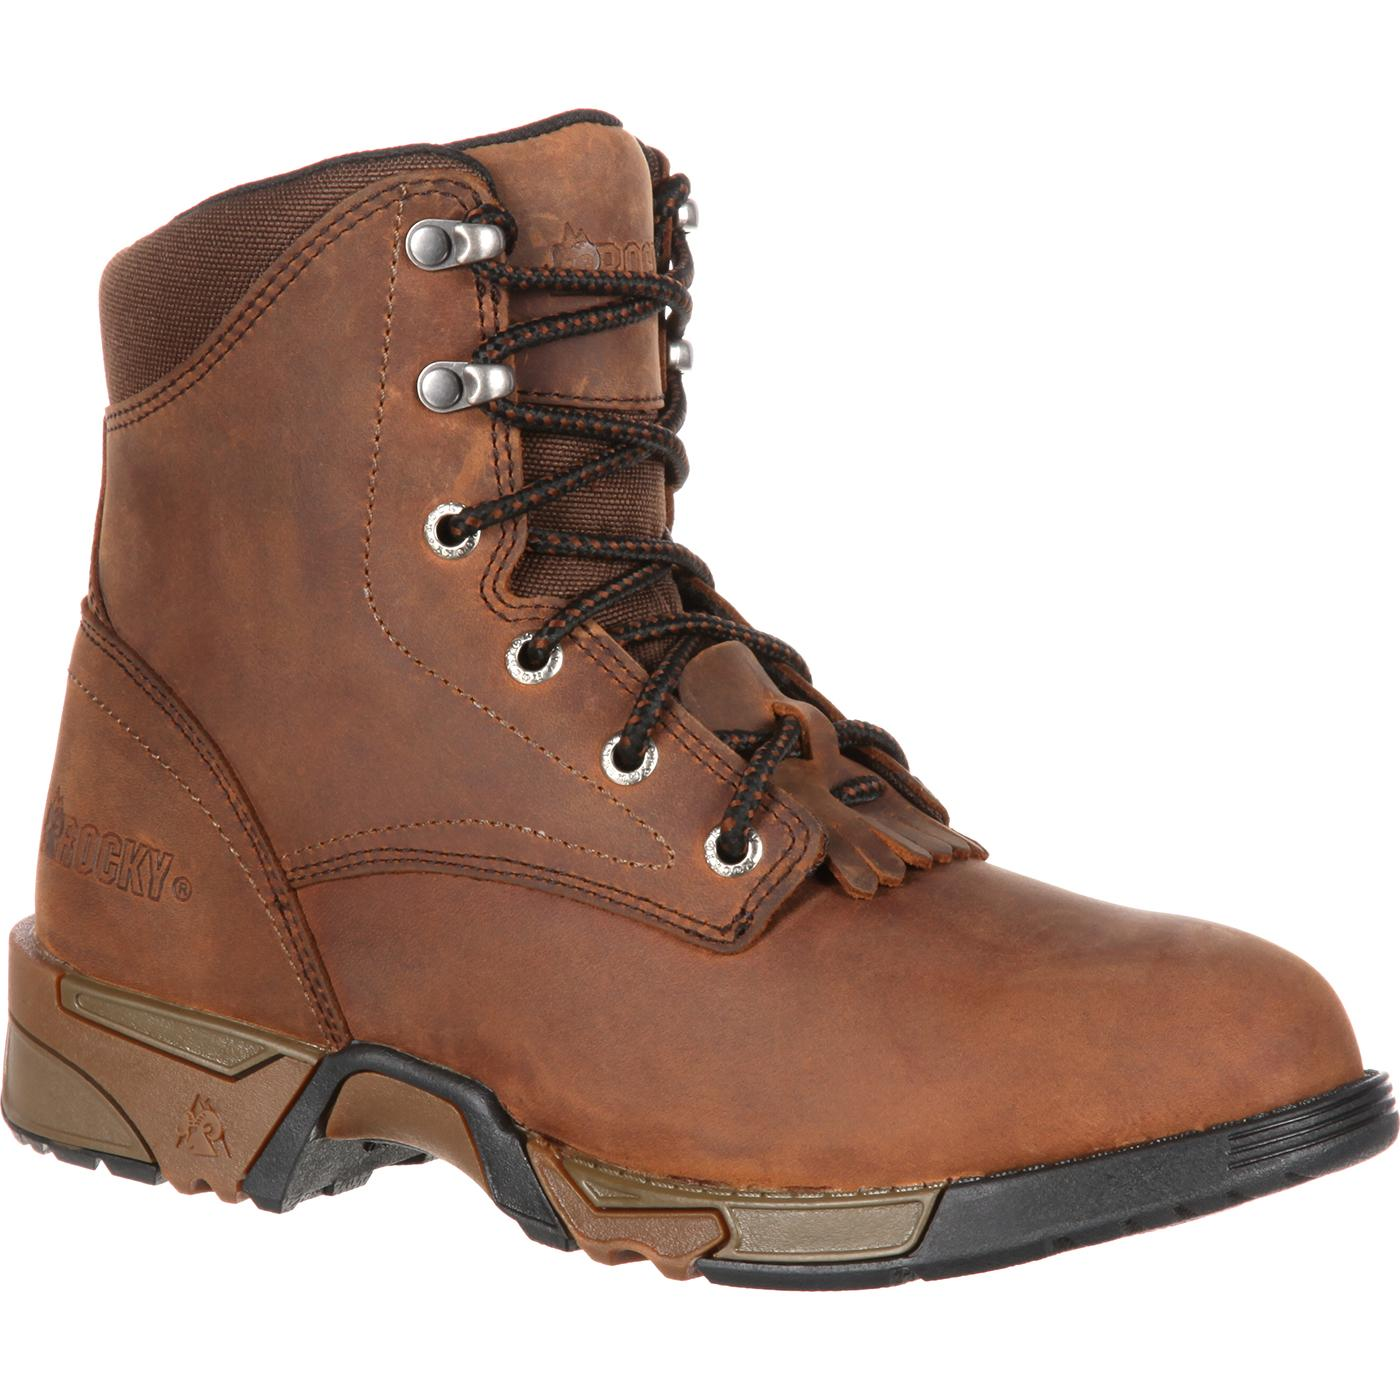 Women's Boots & Outdoor Footwear | Women Camo Boots